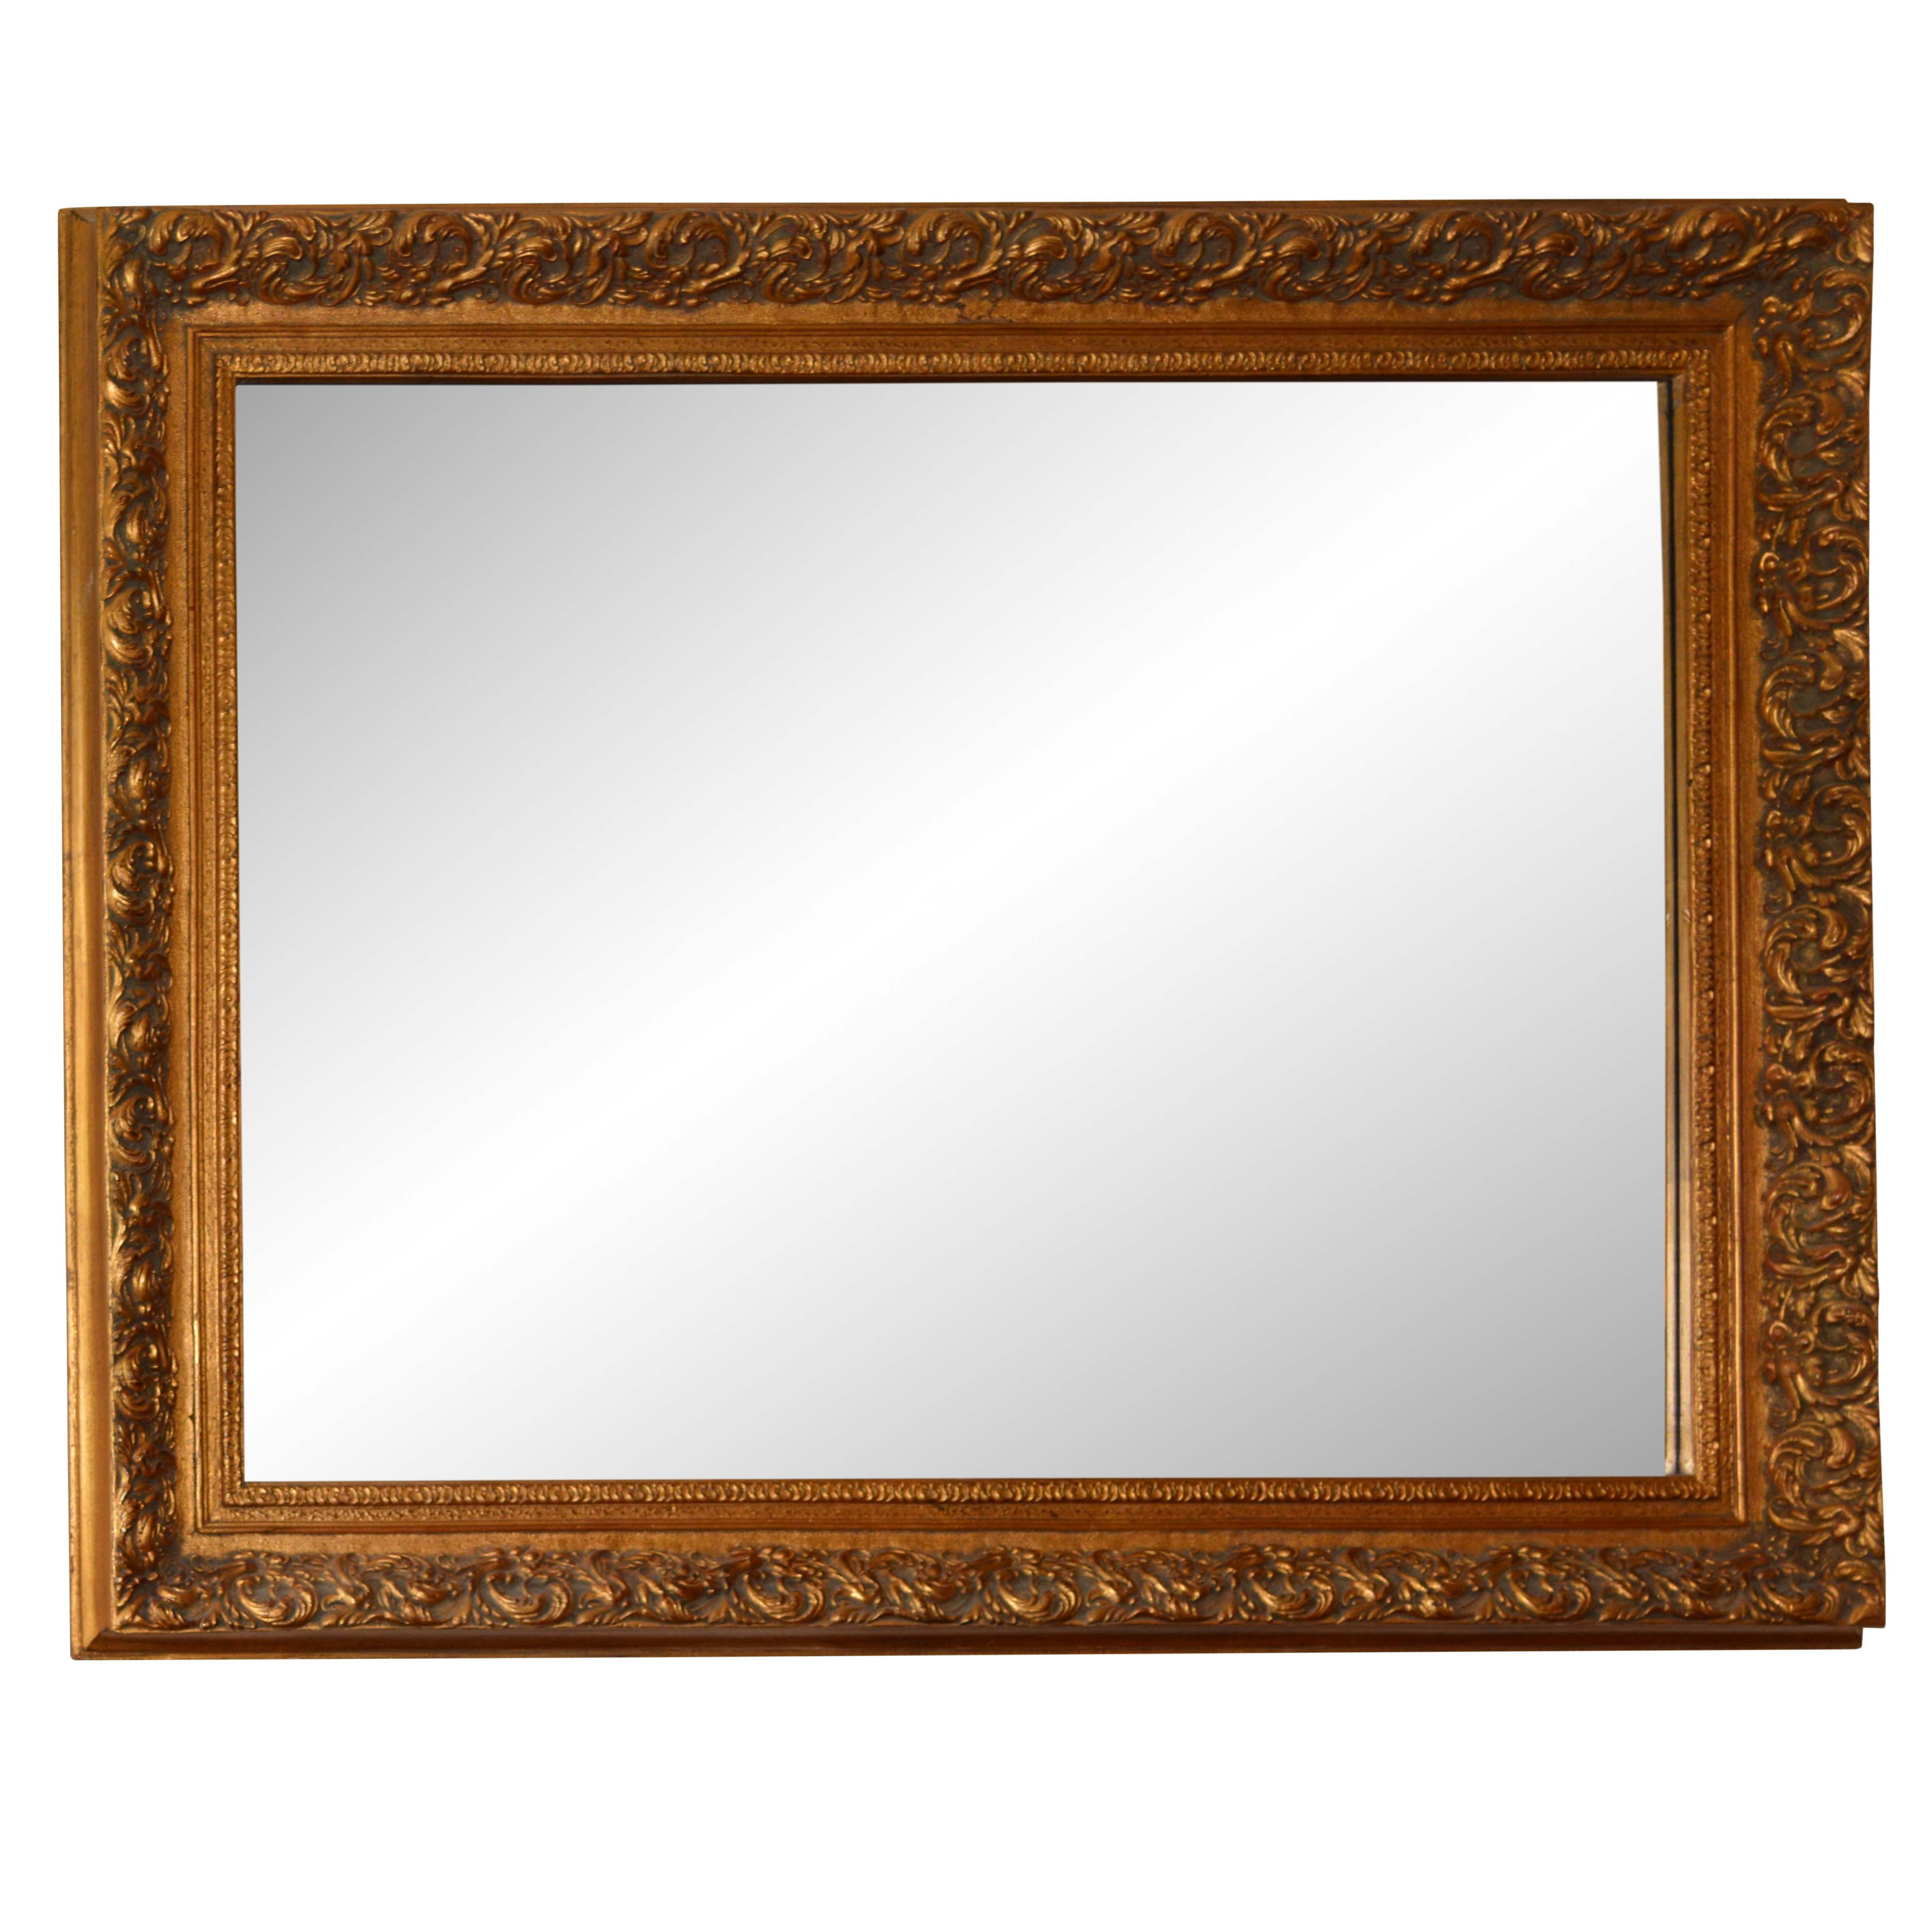 Wood Framed Gold Painted Wall Mirror